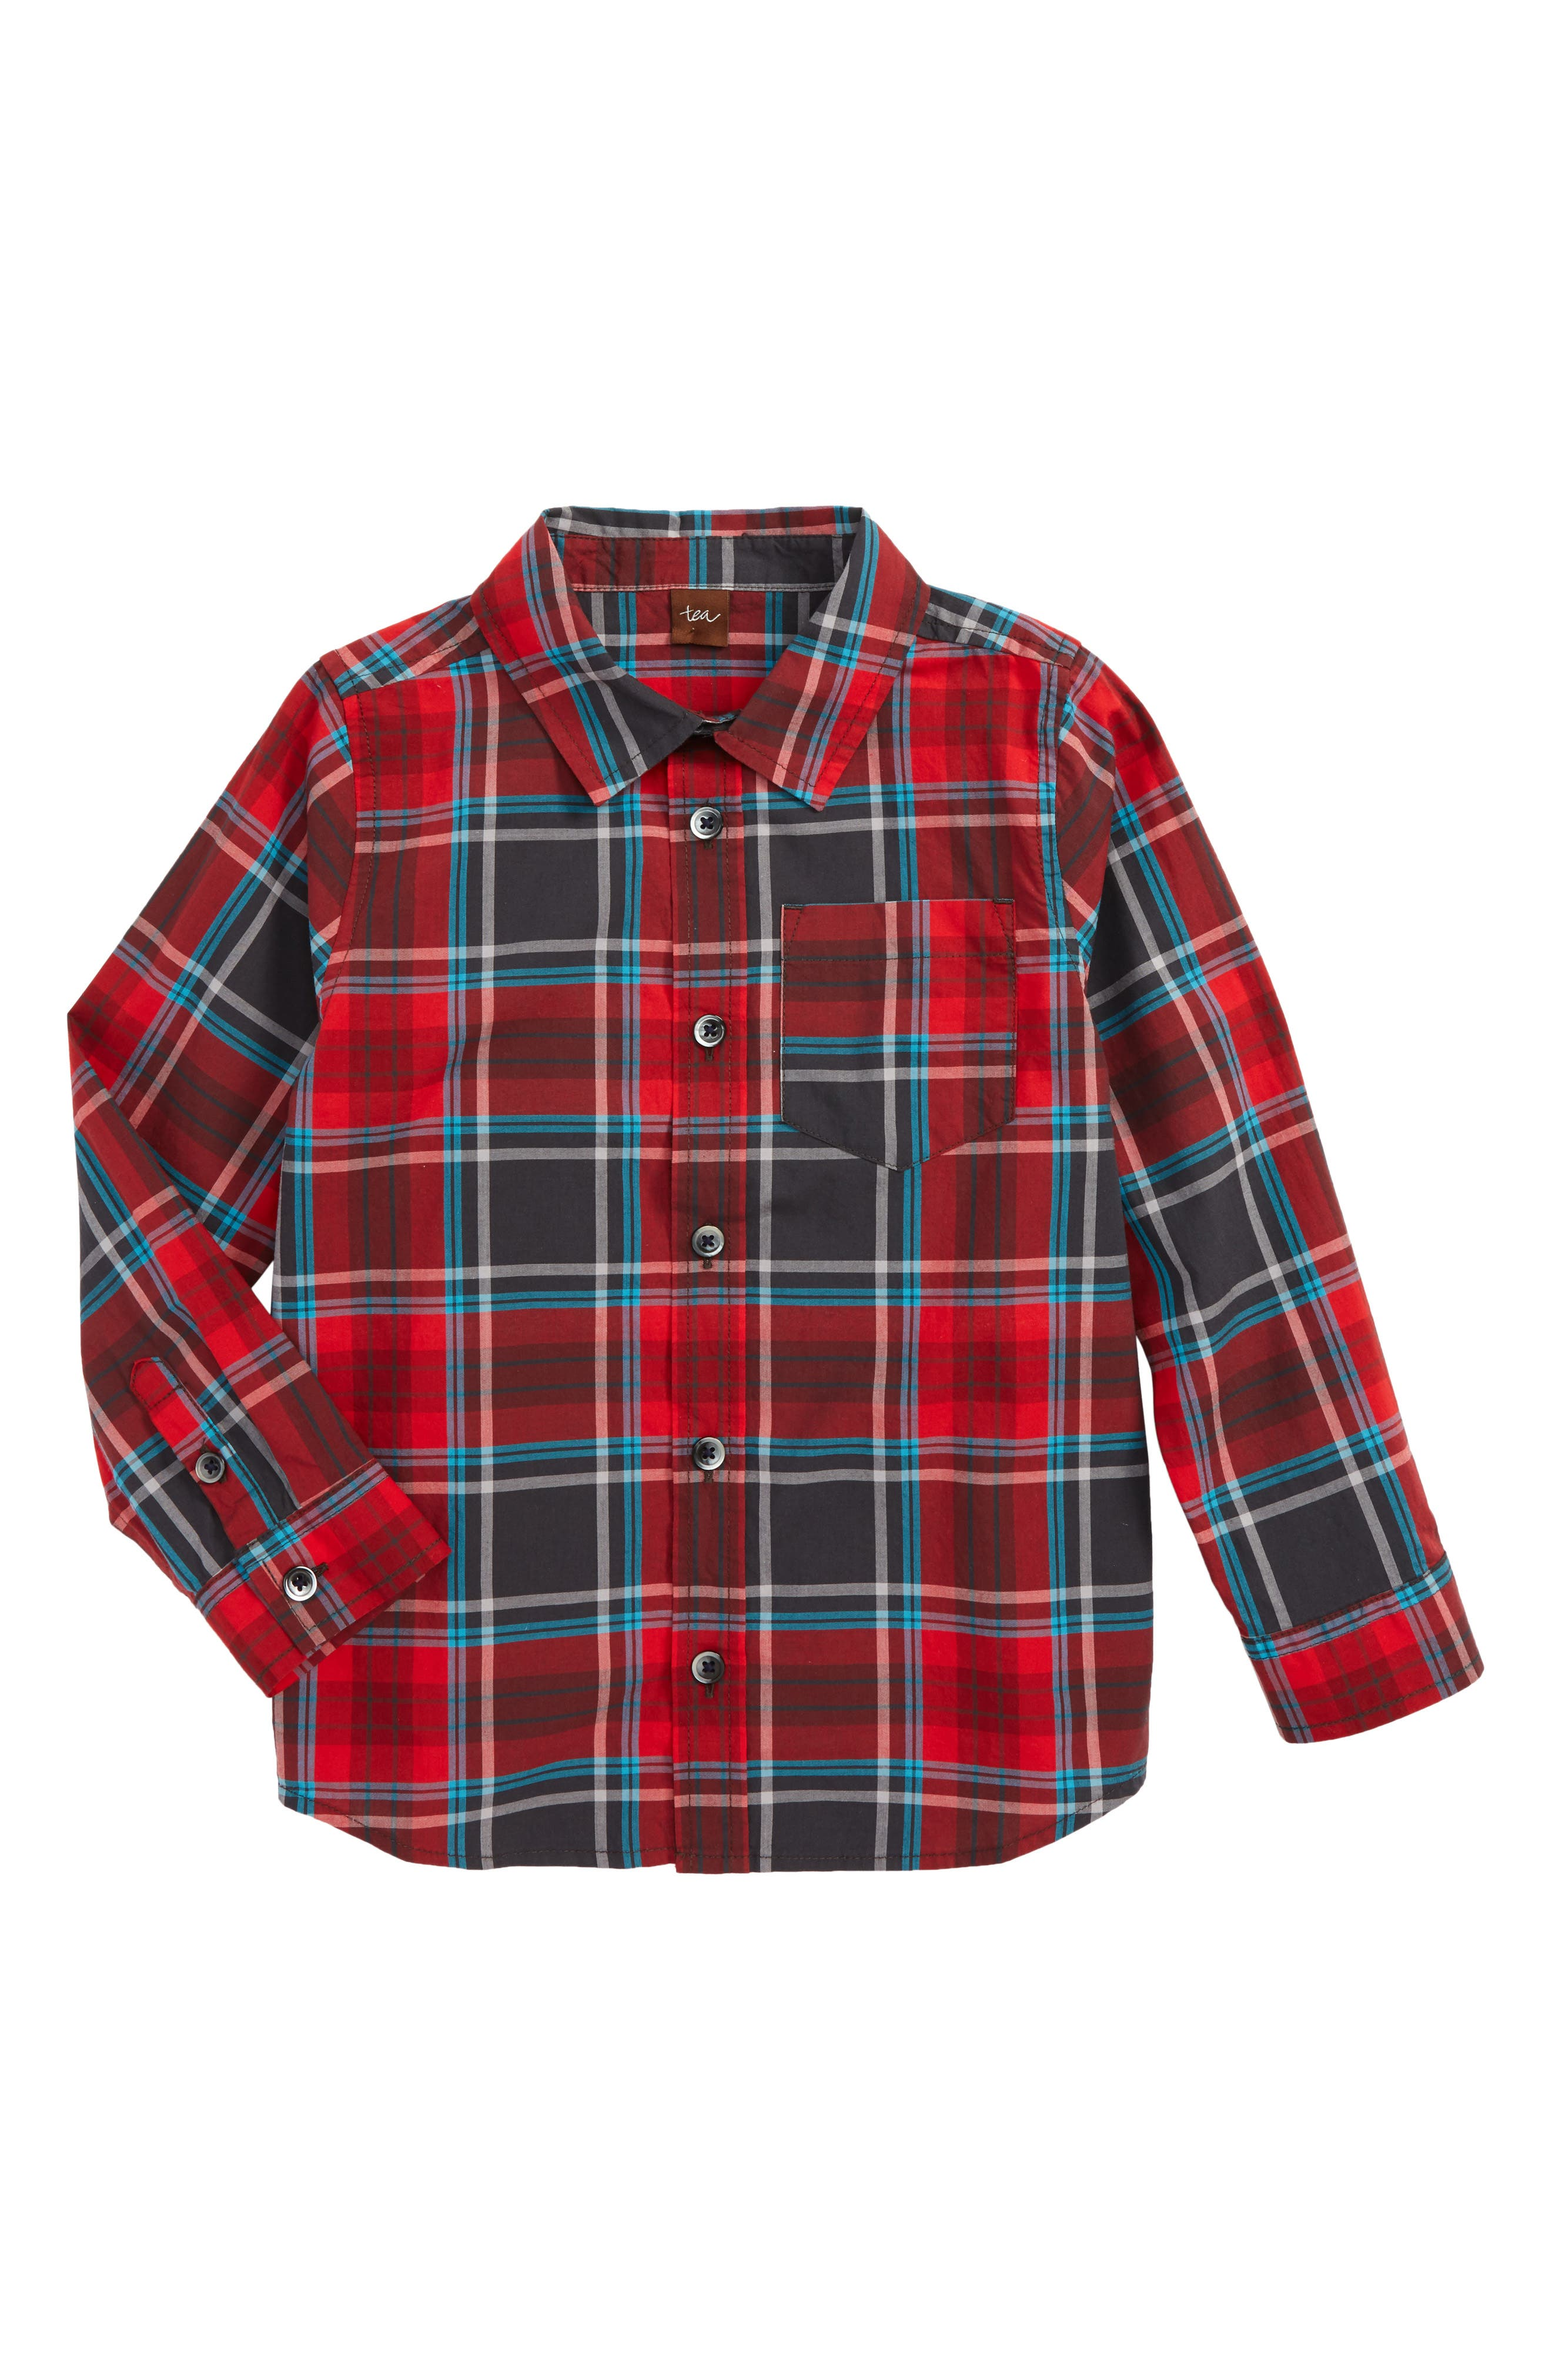 Alternate Image 1 Selected - Tea Collection Duncan Plaid Woven Shirt (Toddler Boys & Little Boys)